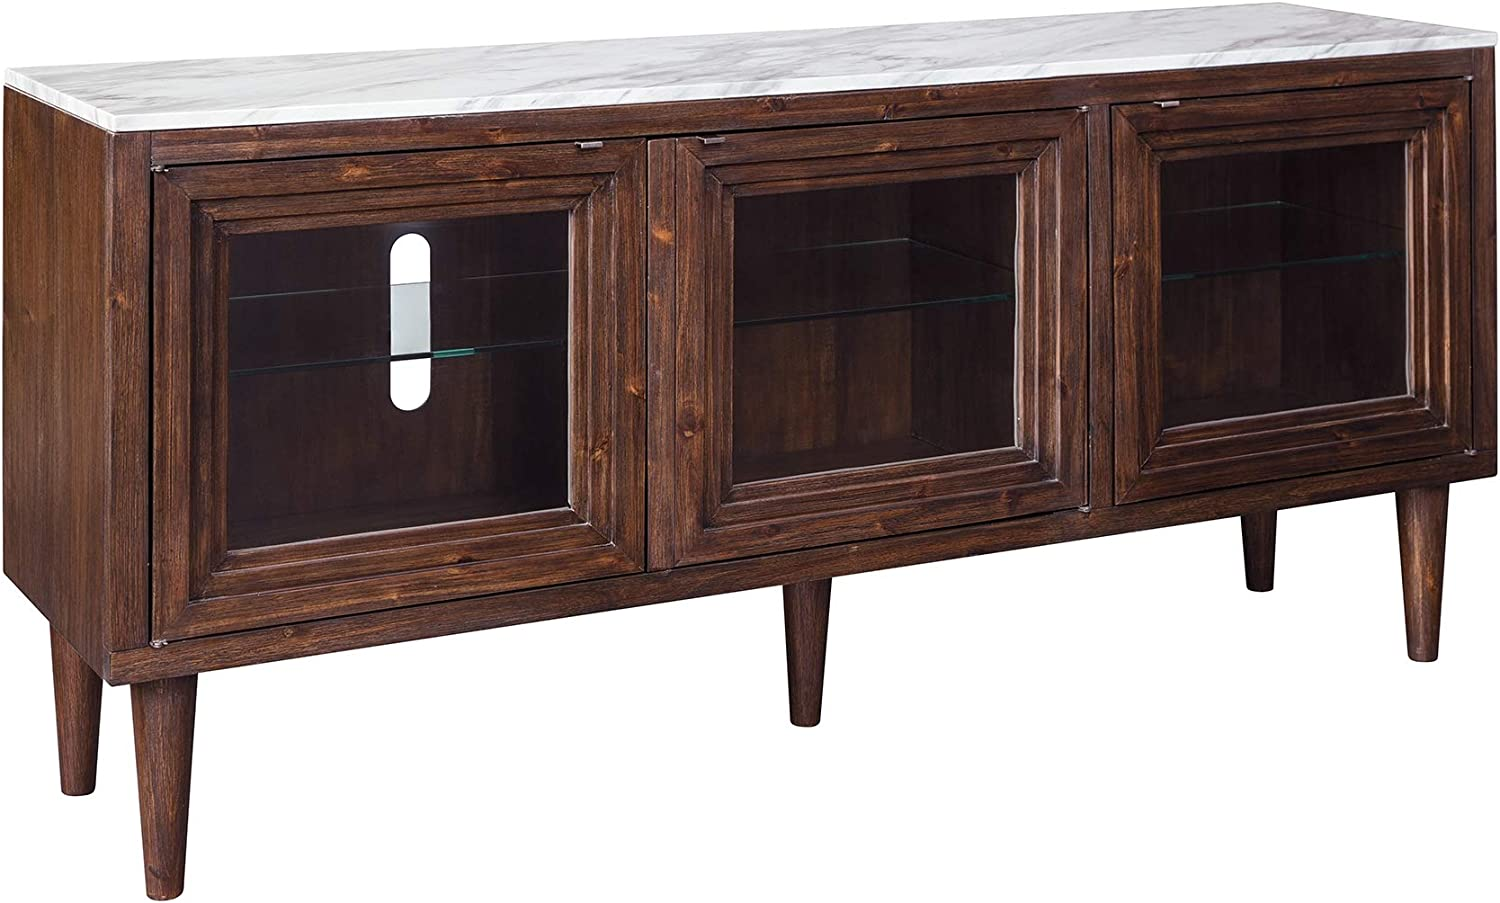 Signature Design by Ashley - Graybourne Accent Cabinet - White Faux Marble Top - 3 Glass Shelves - Brown